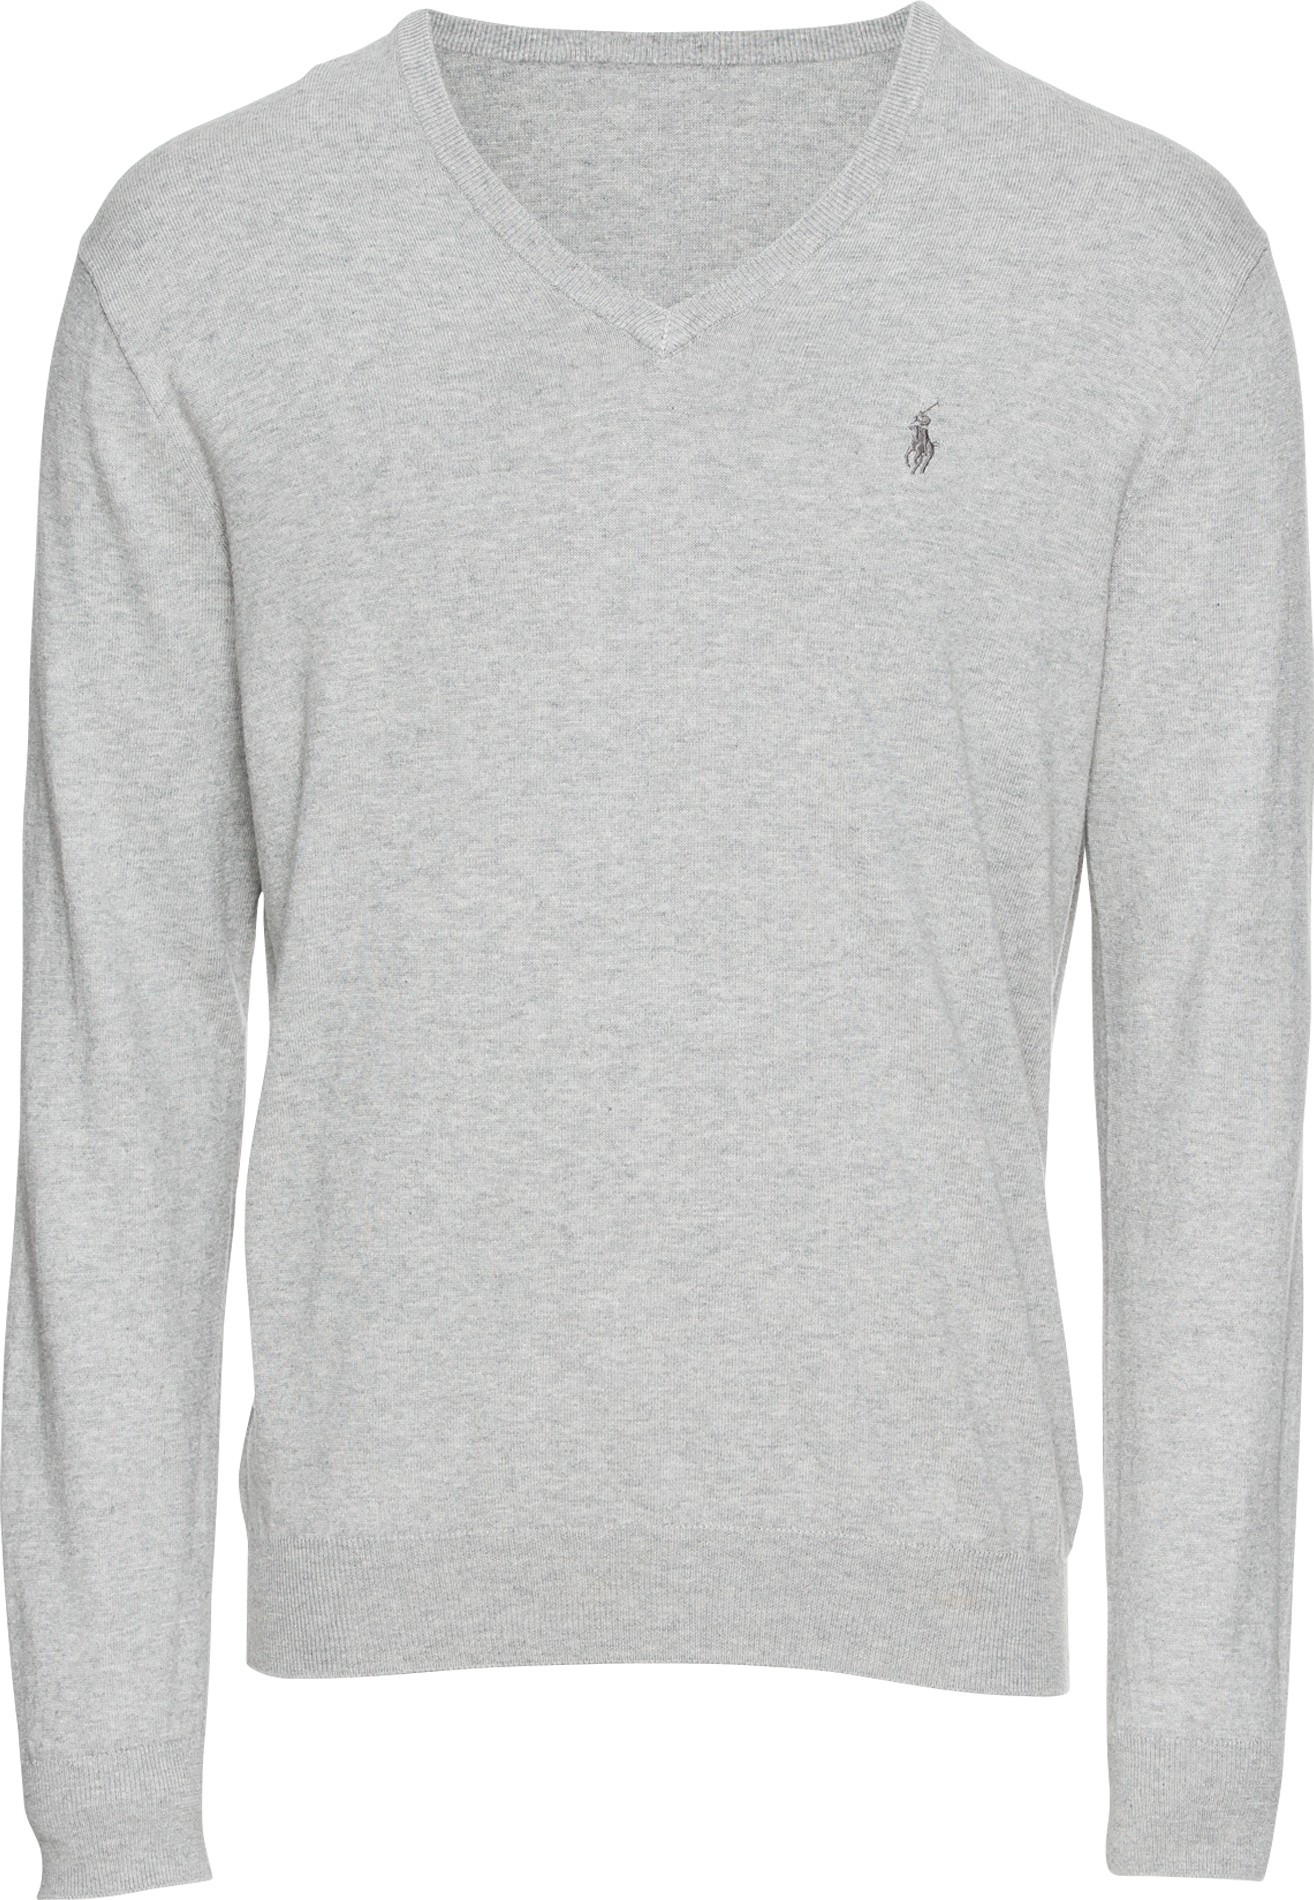 POLO RALPH LAUREN Svetr LS SF VN PP-LONG SLEEVE-SWEATER šedá Polo Ralph Lauren